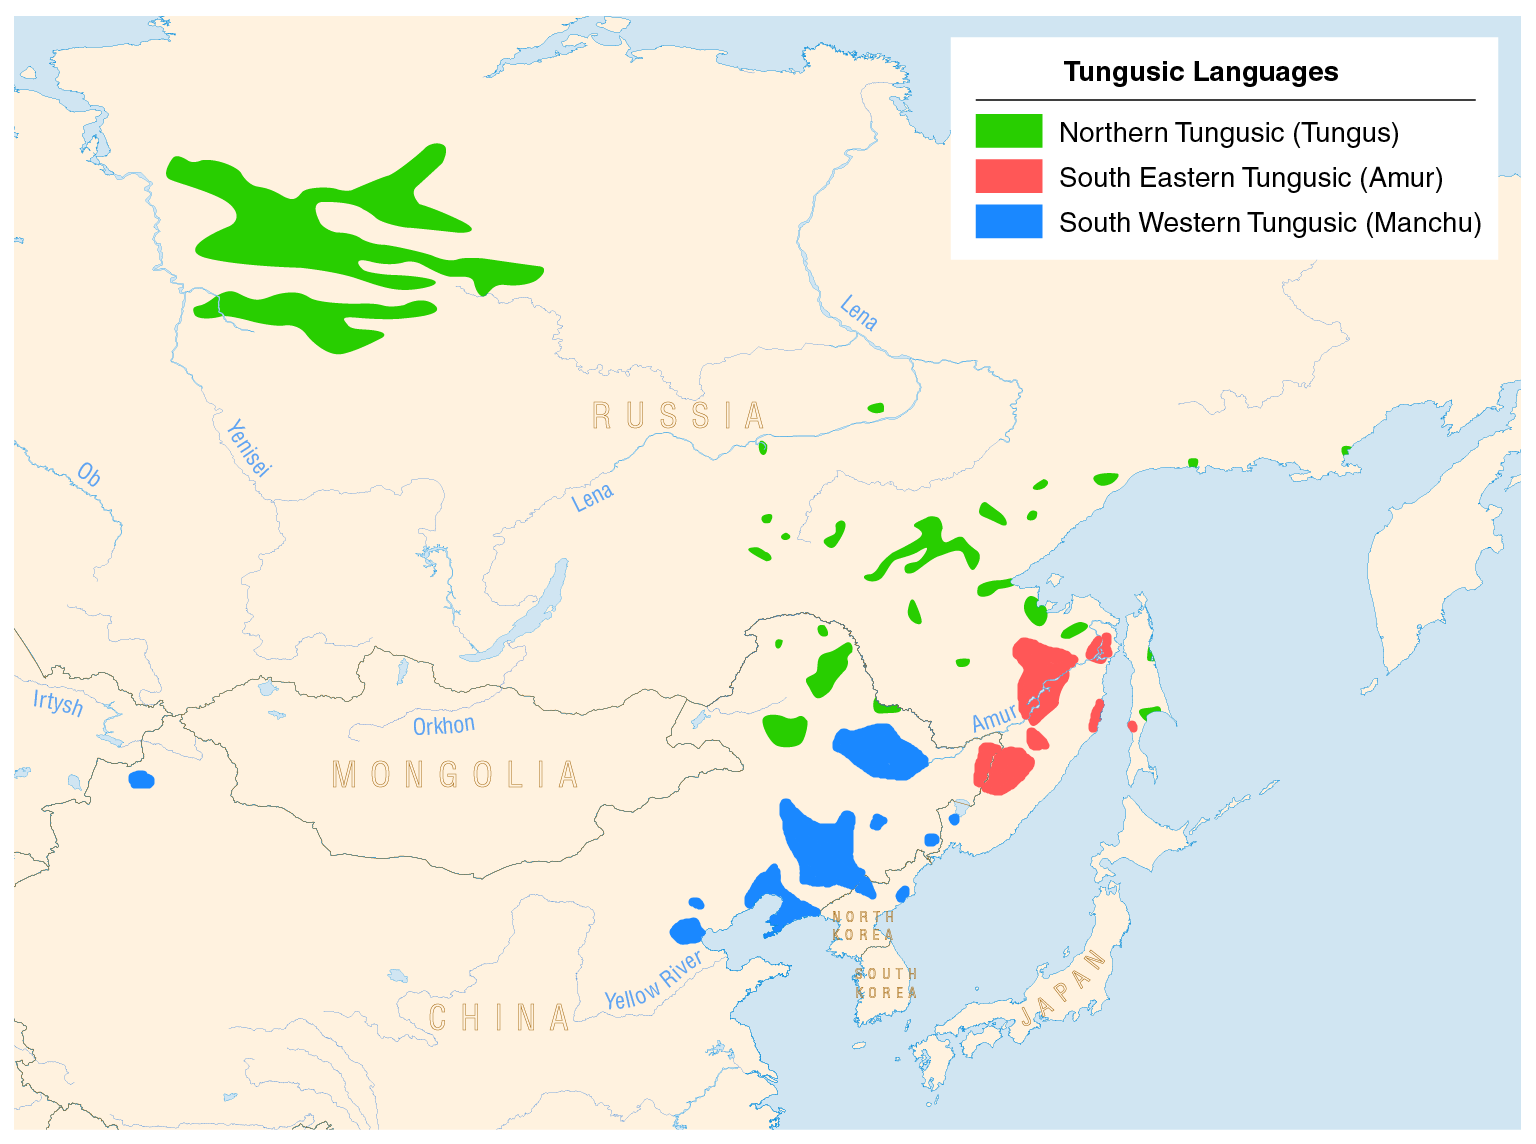 Linguistic_map_of_the_Tungusic_languages